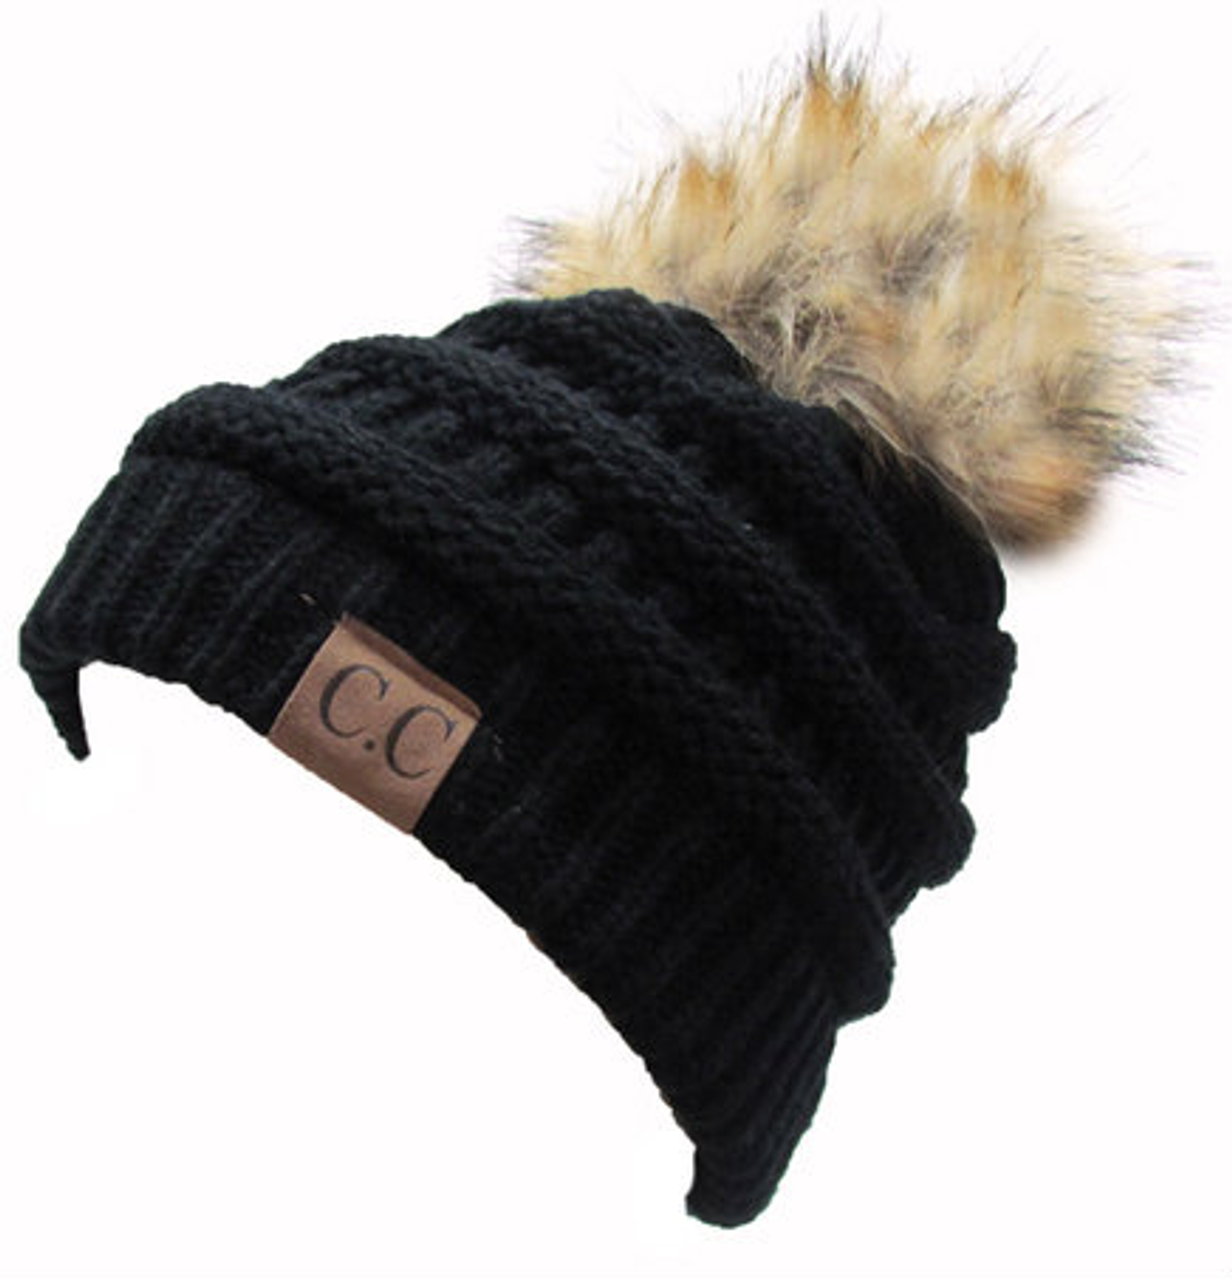 C.C Black Fur Pom Beanie - Girls Round Here 64546136b